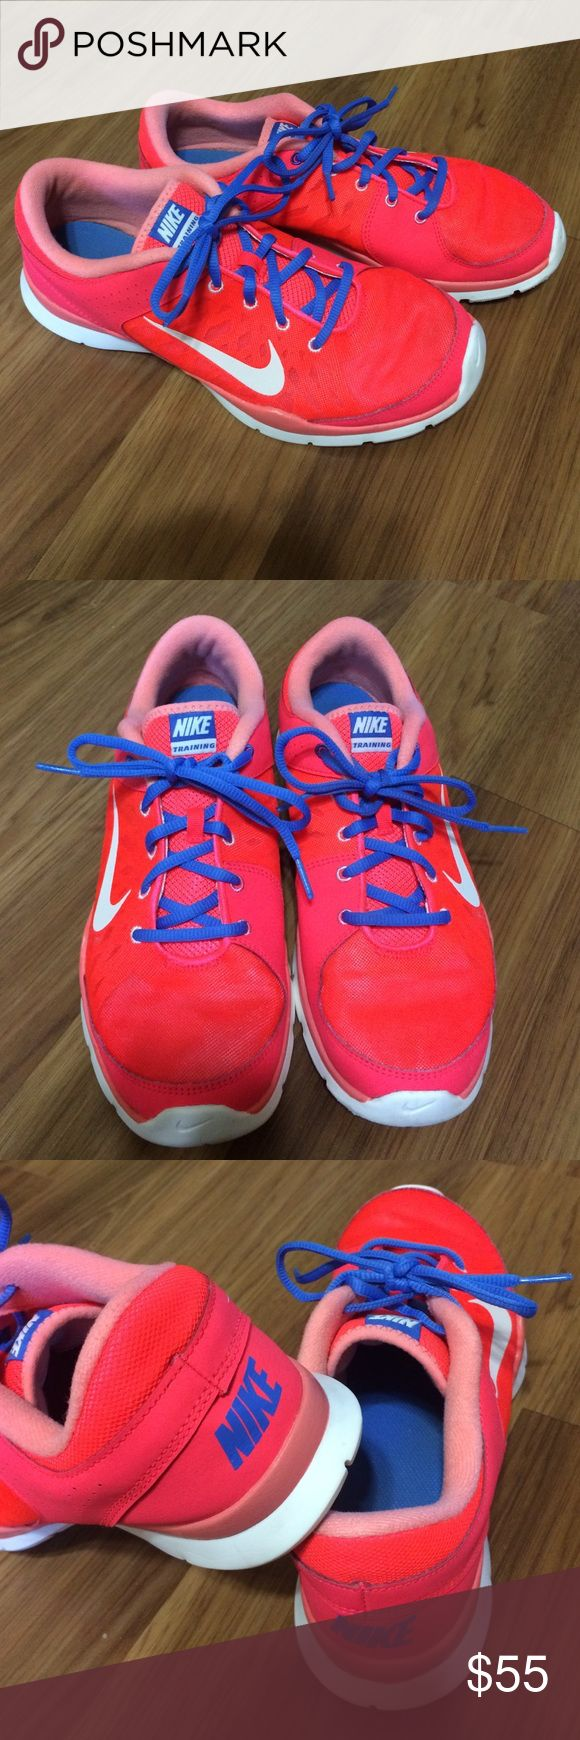 Nike training shoes Nice shoes,size 11 Nike Shoes Sneakers